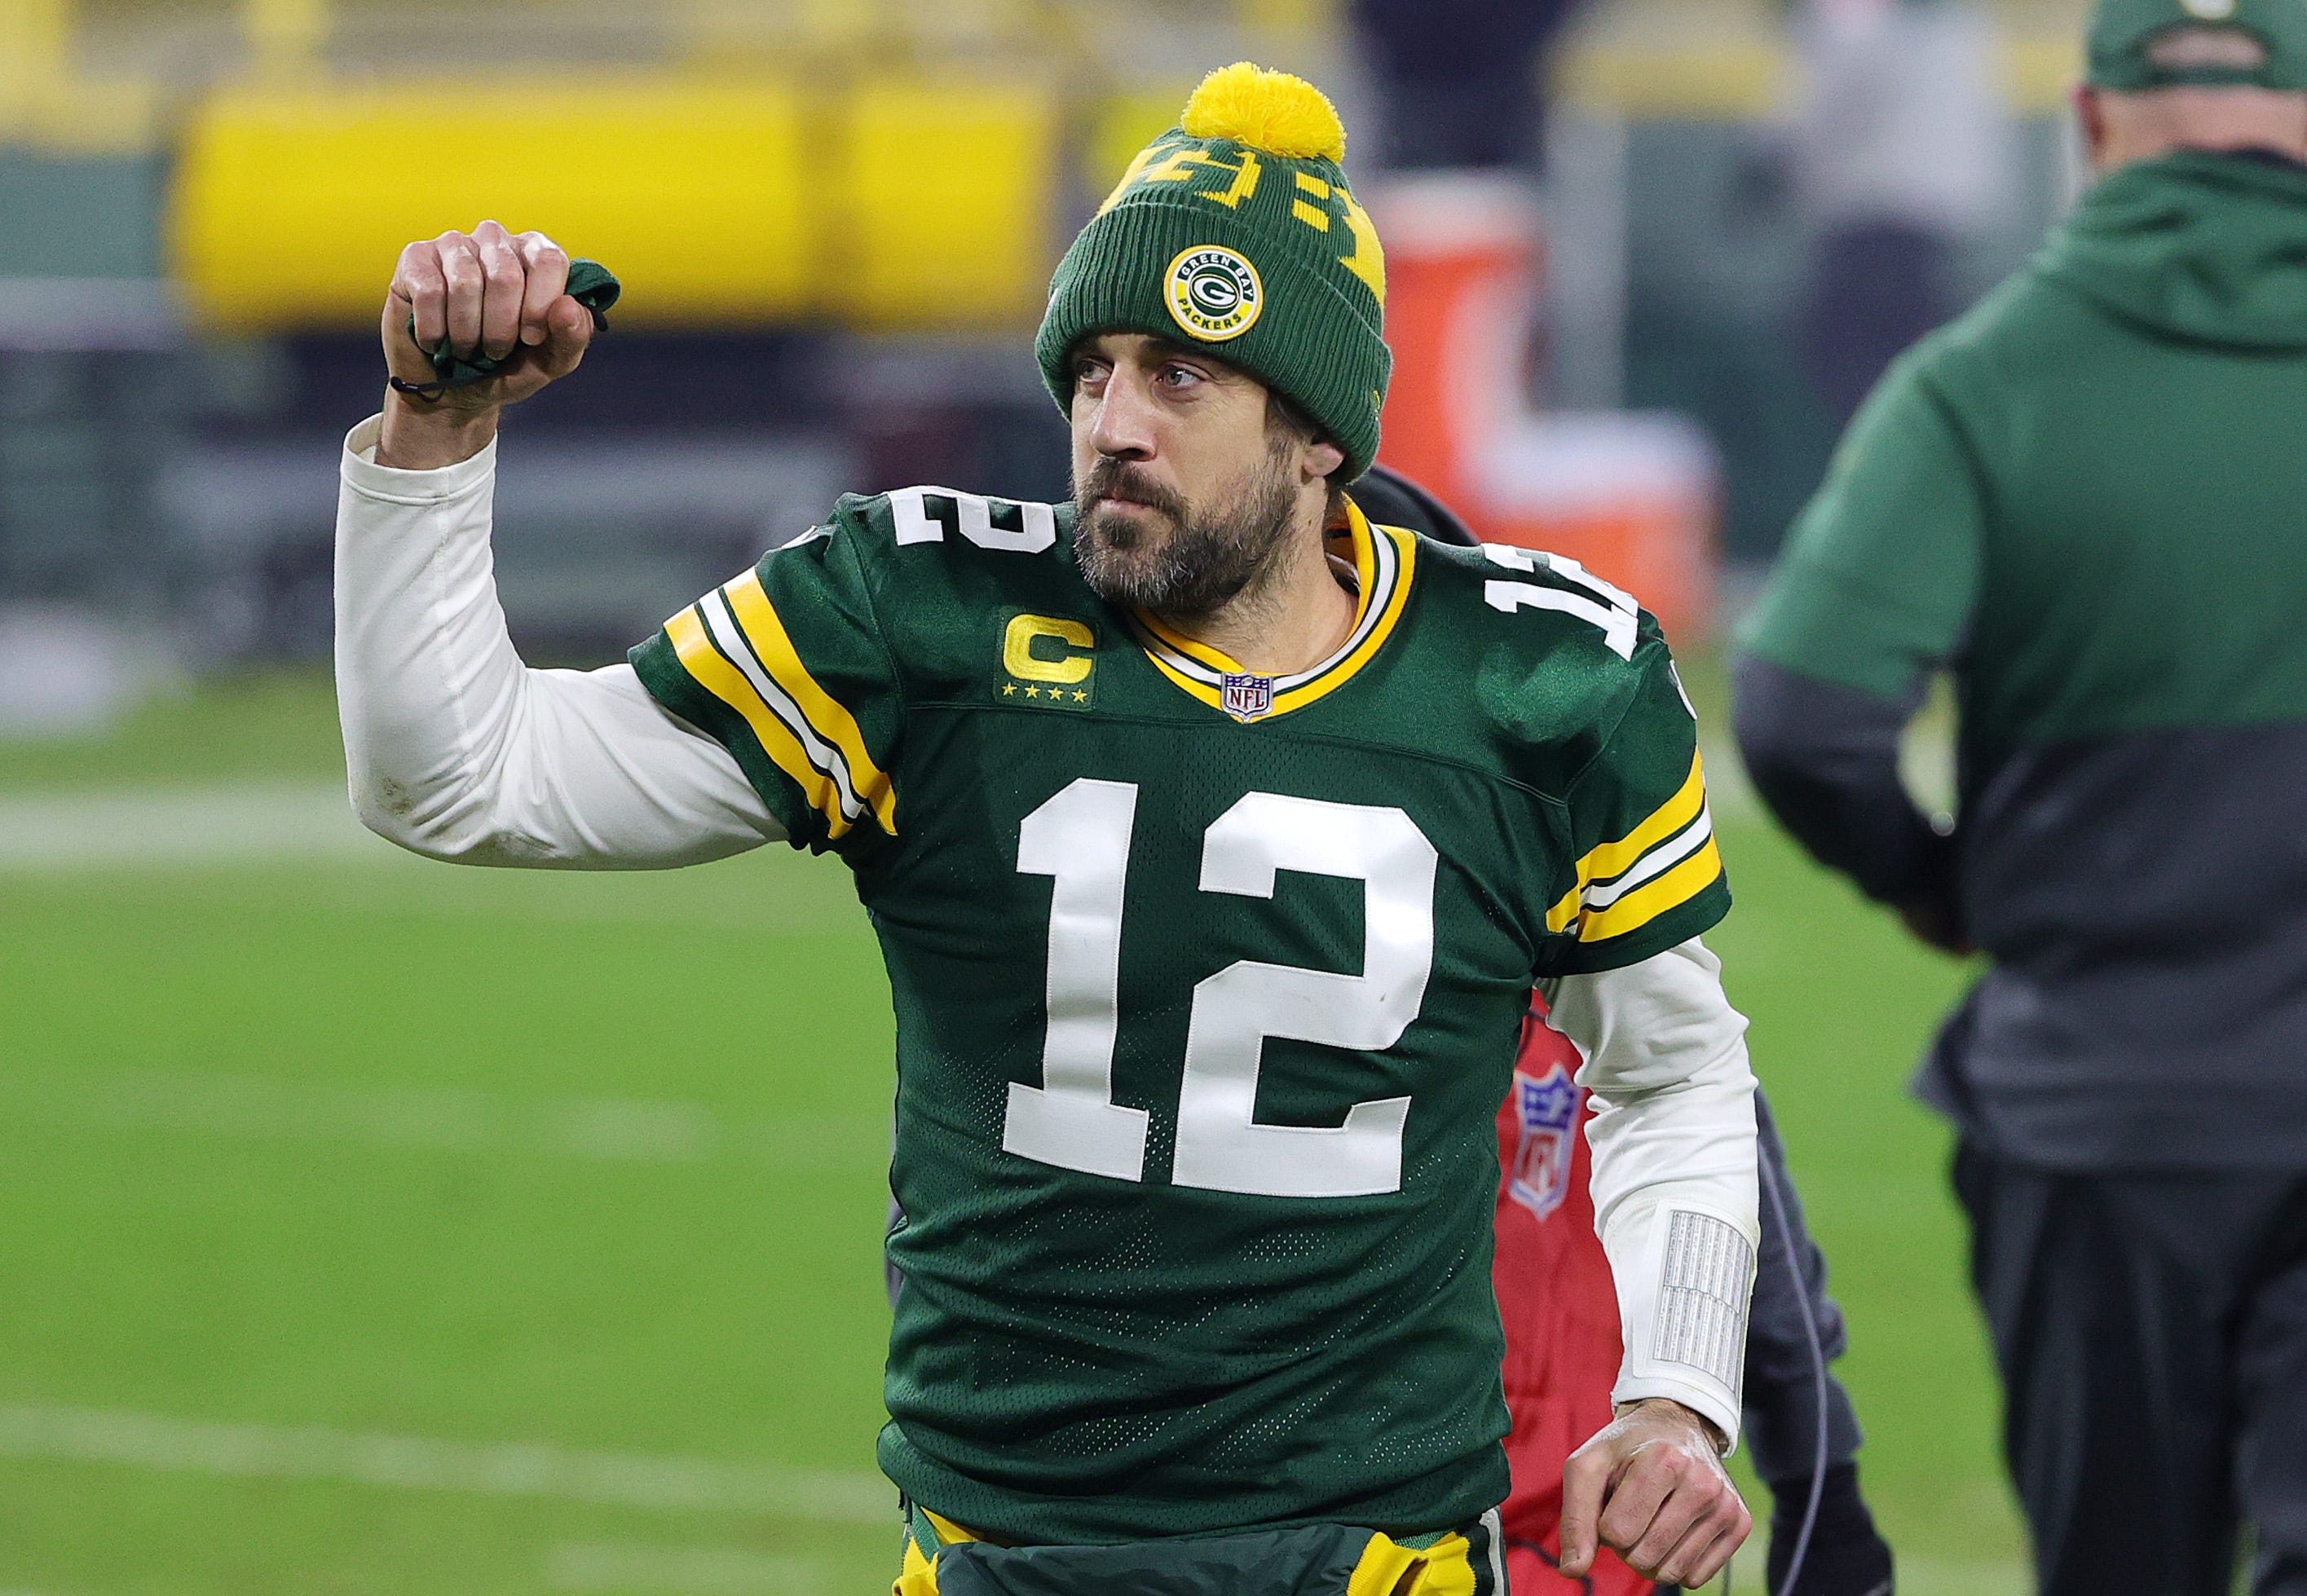 Aaron Rodgers close to reworked contract with Green Bay Packers